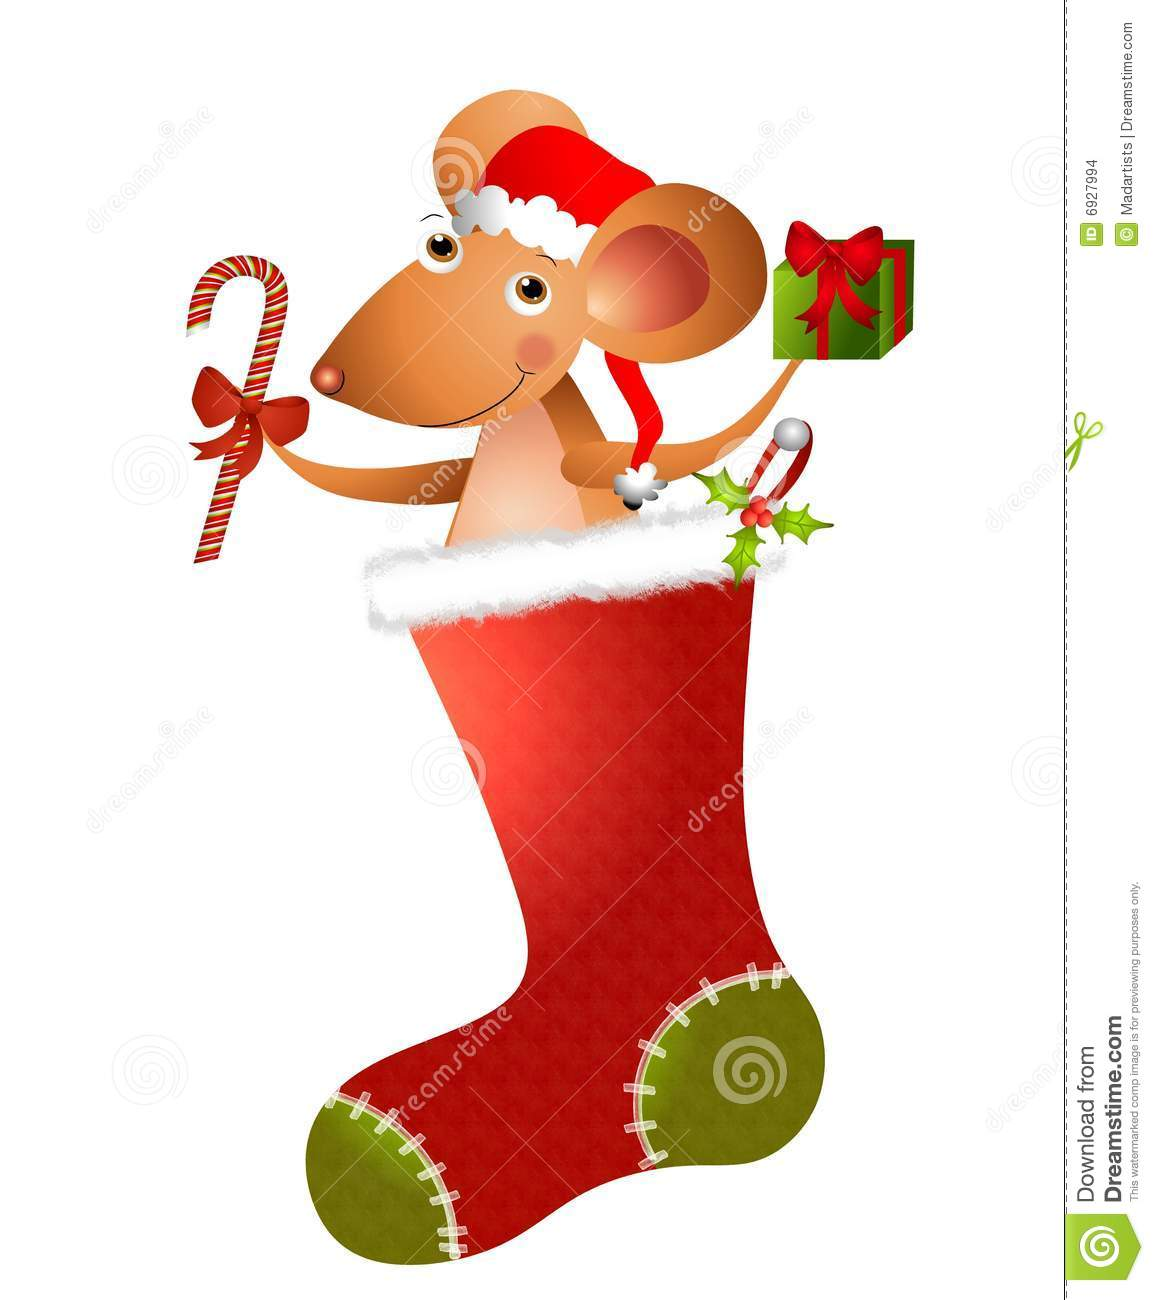 Cartoon Mouse Christmas 2 Stock Images - Image: 6927994